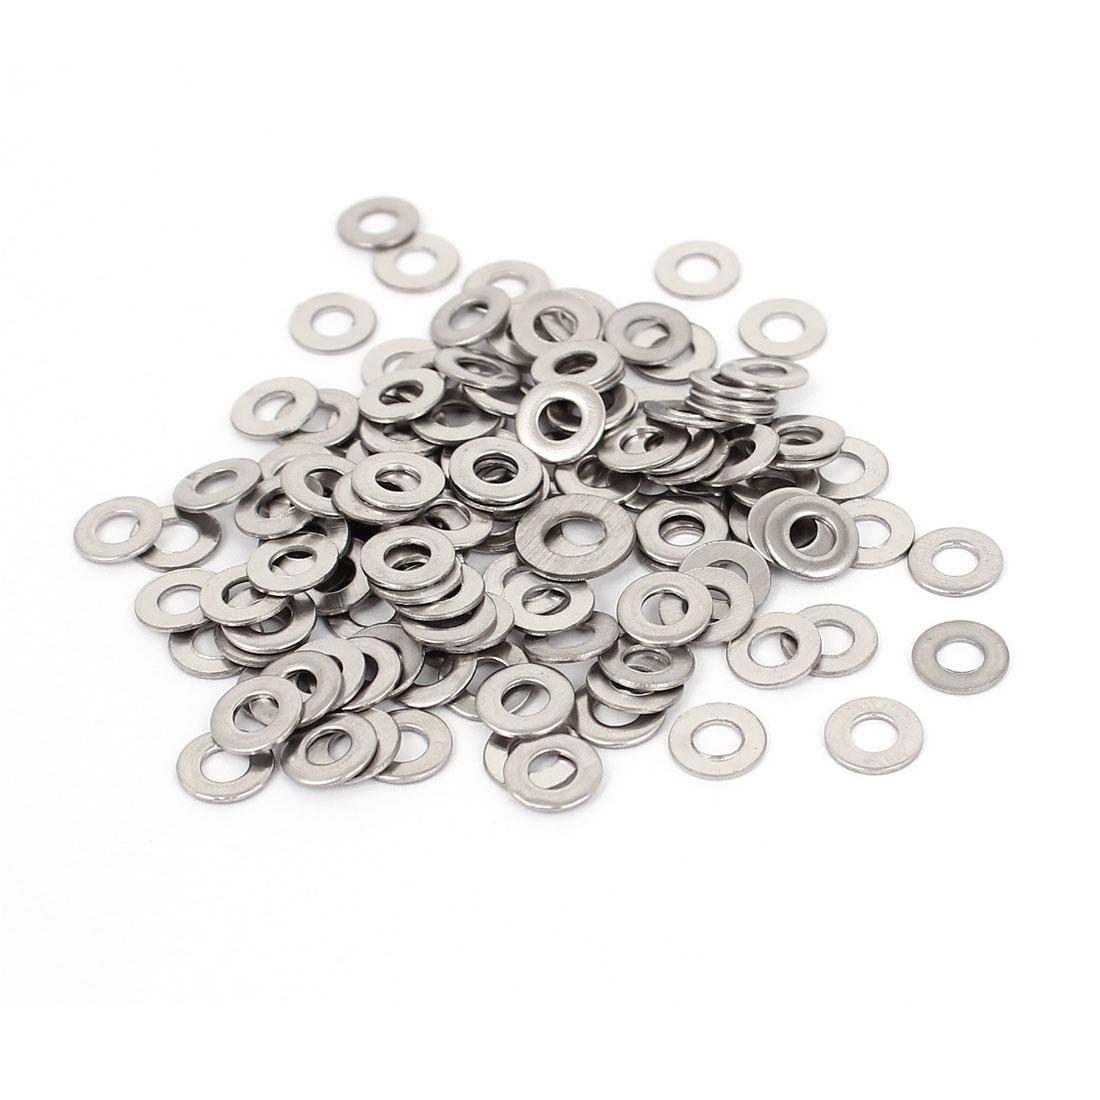 100Pcs M3x7mmx0.5mm Stainless Steel Metric Round Flat Washer for Bolt Screw